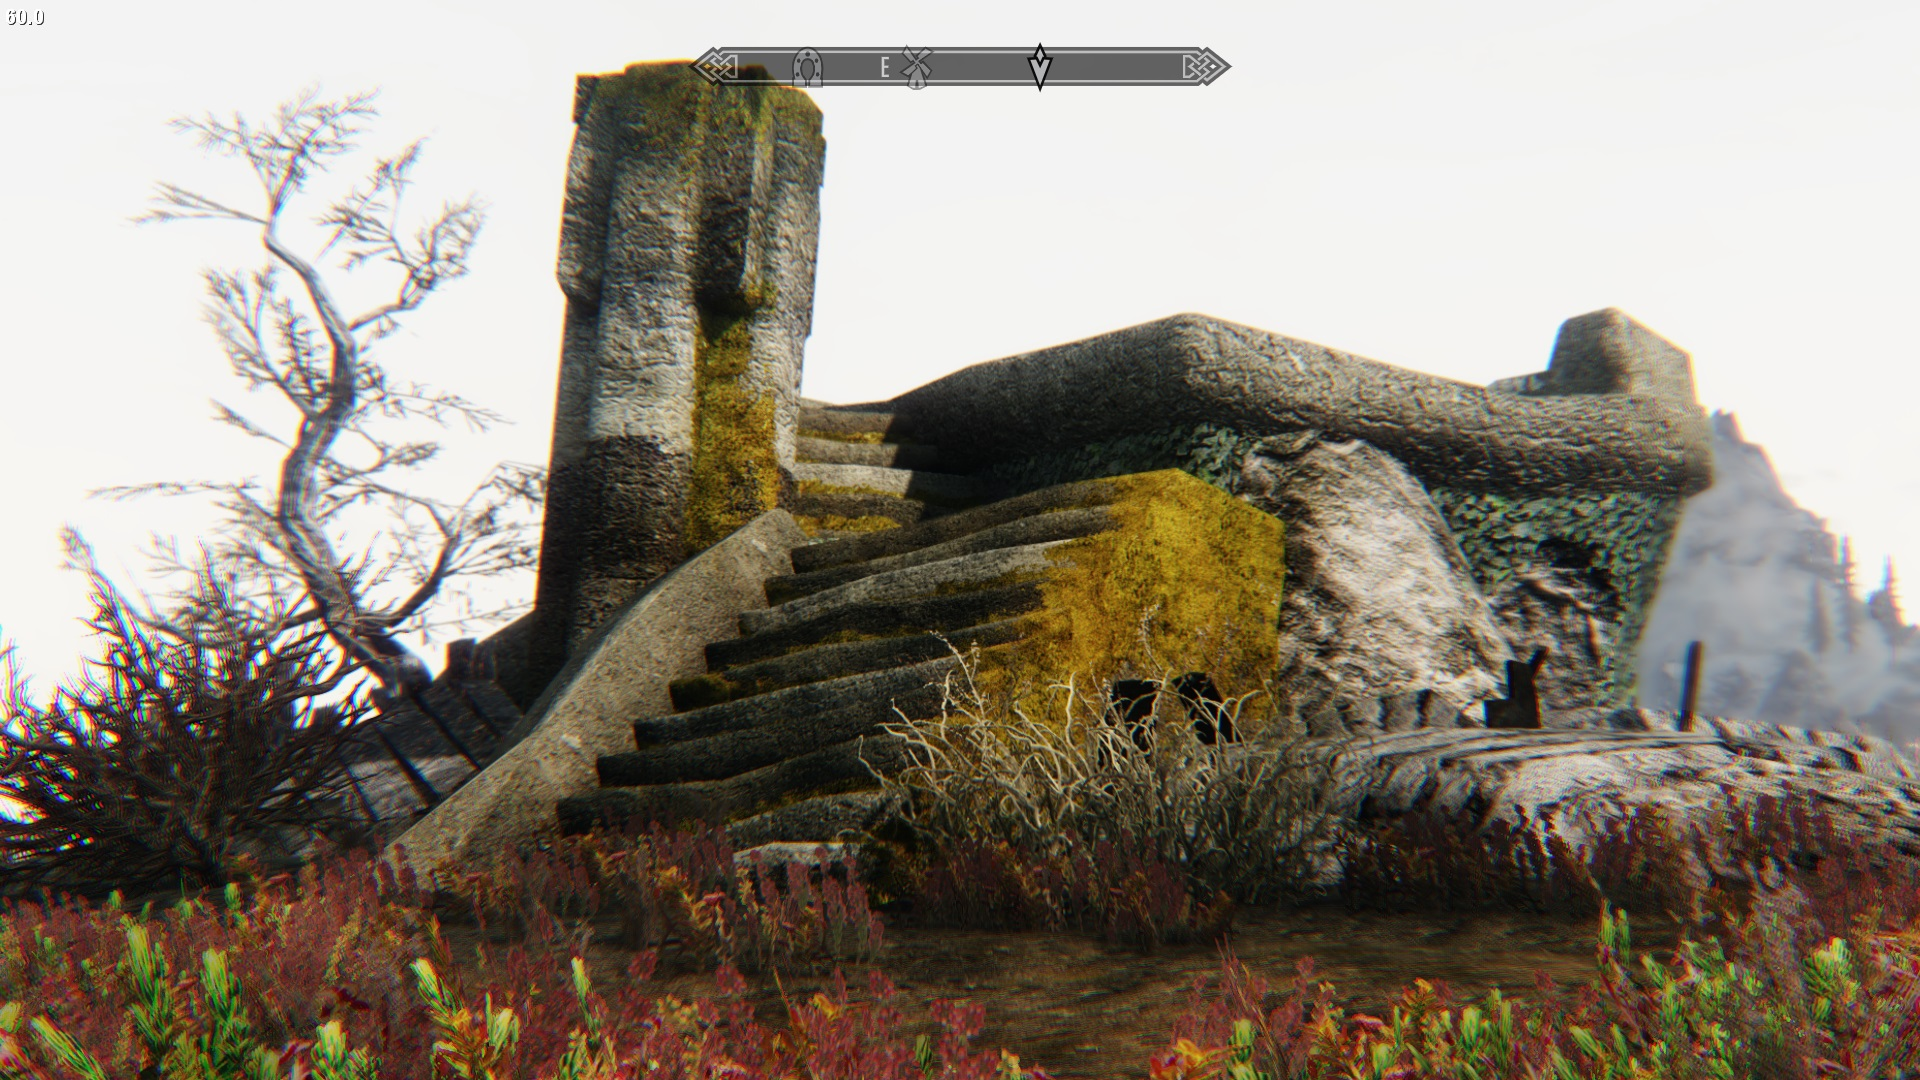 Performance and realistic ENB